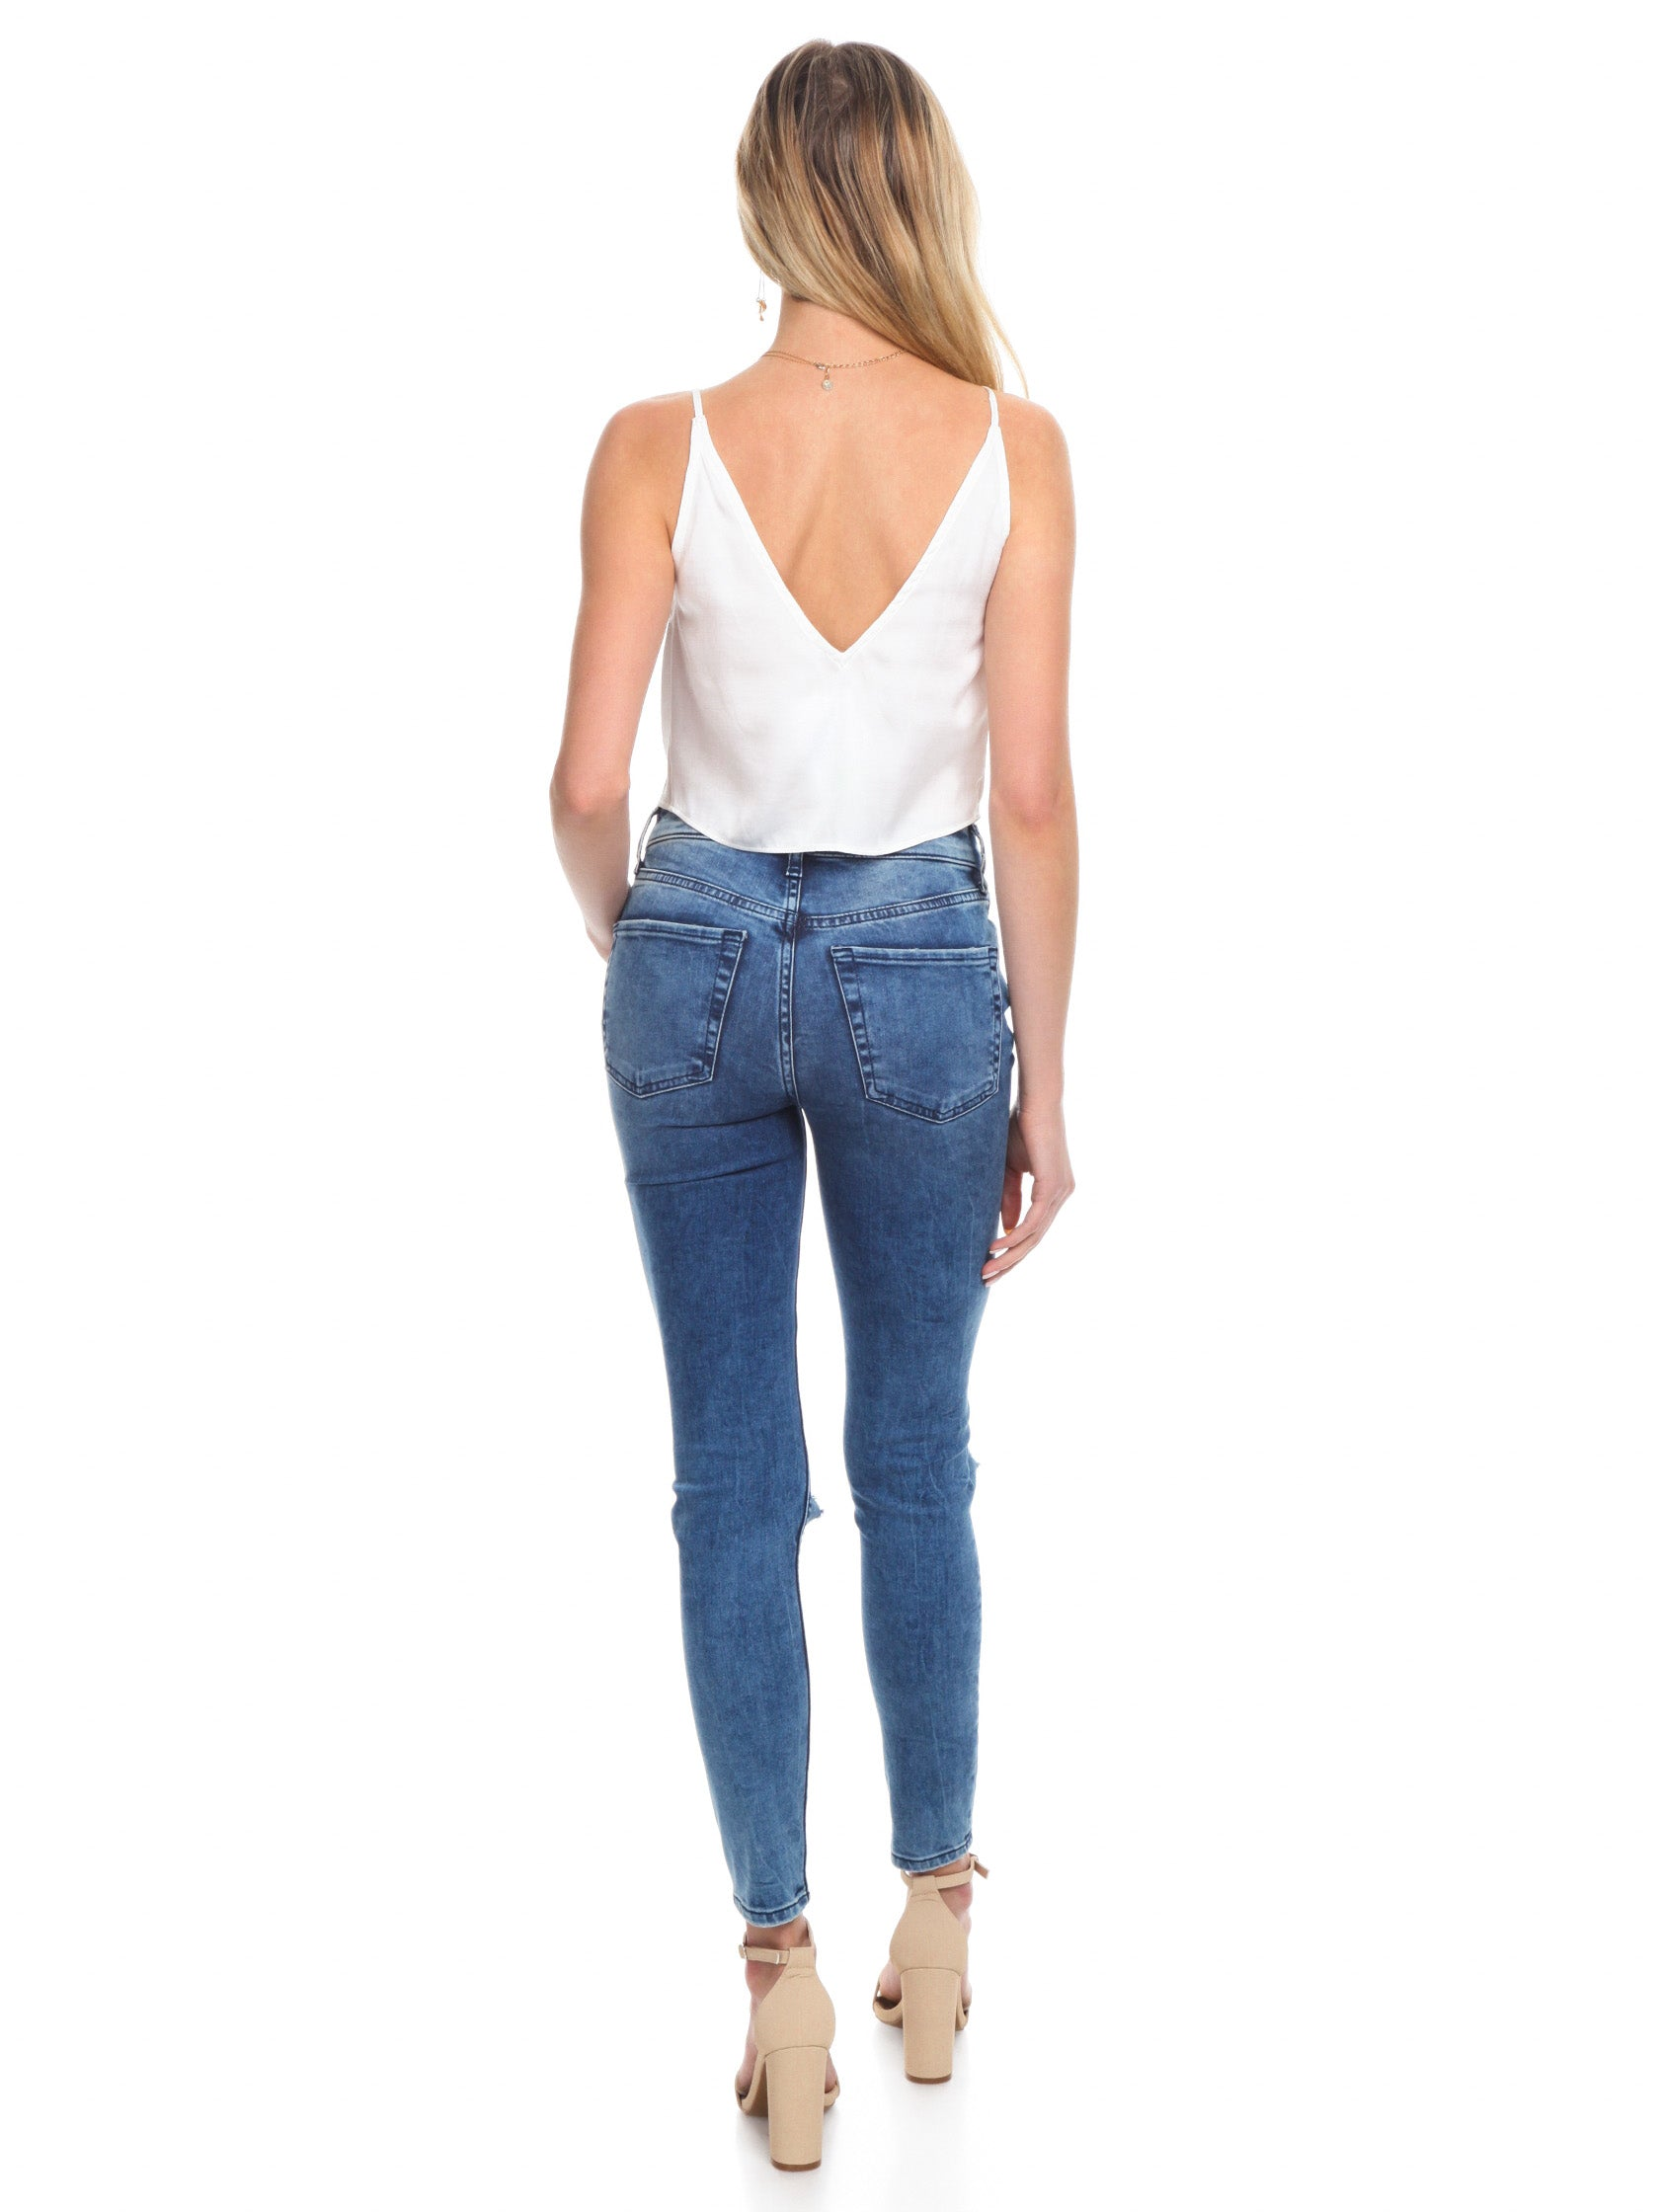 Women wearing a denim rental from Free People called High Rise Busted Skinny Jeans